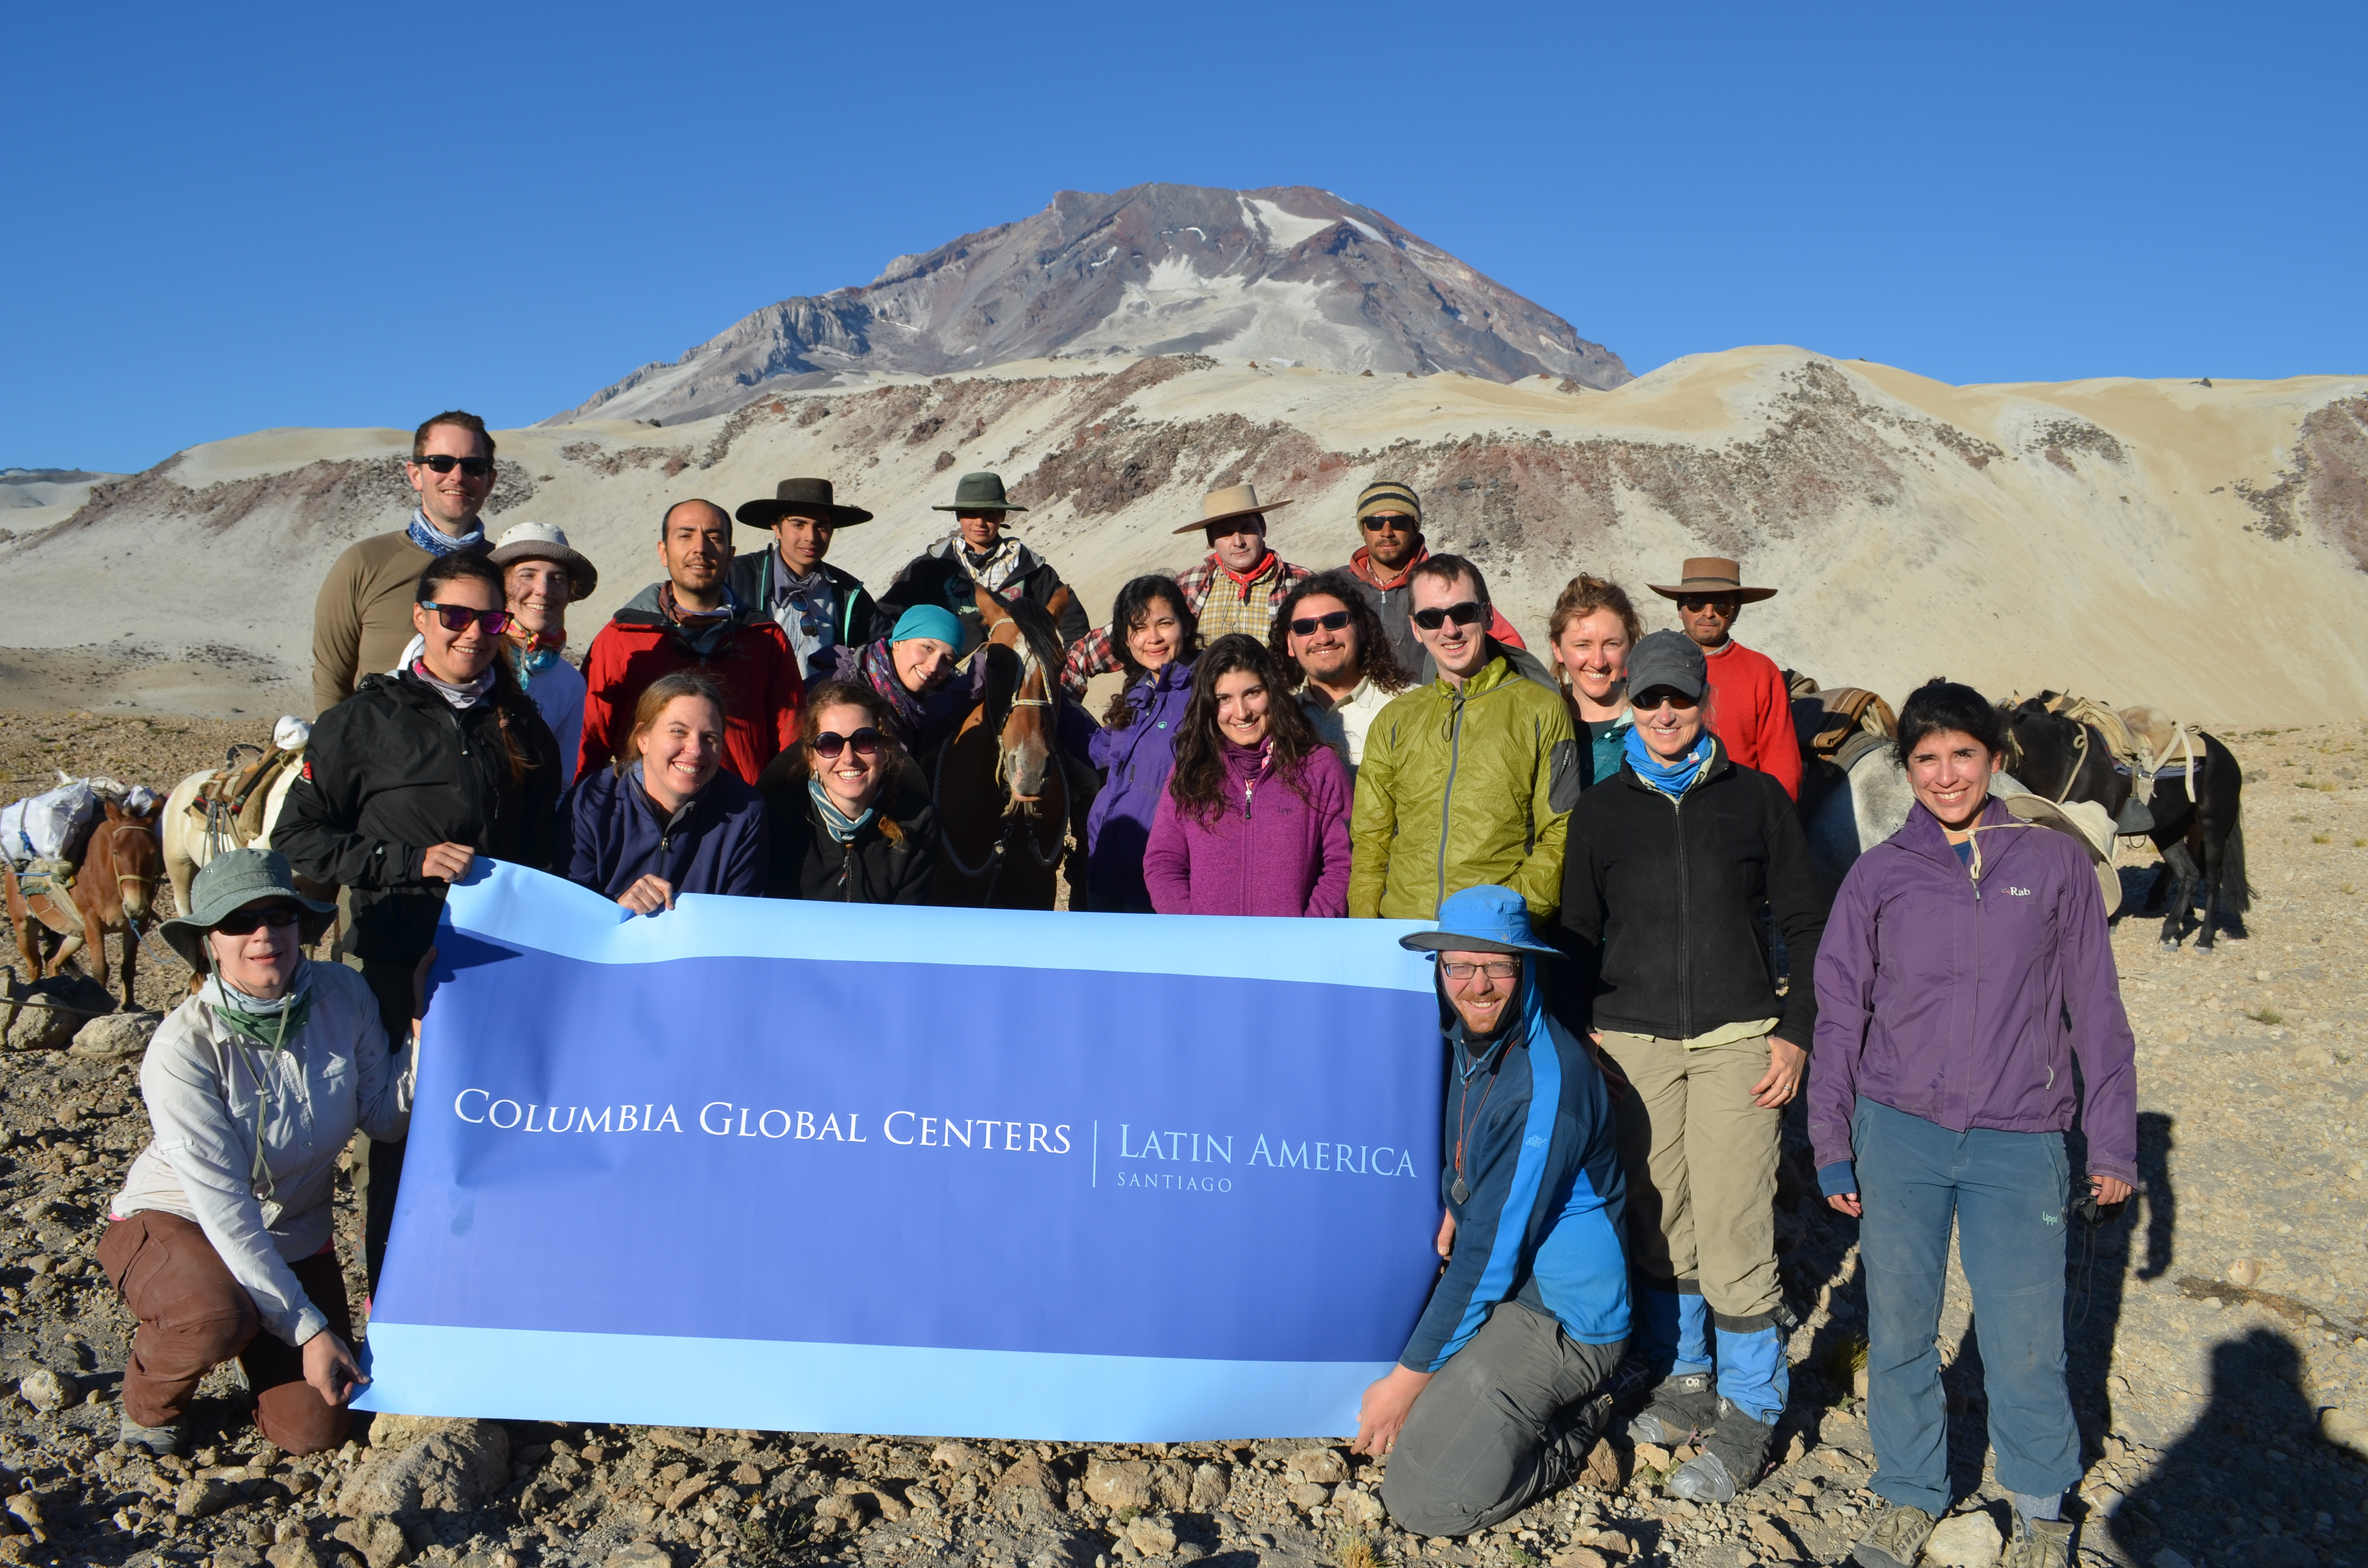 Near the foot of Descabezado Grande, a group shout-out to the Columbia Global Centers, which facilitated the expedition.